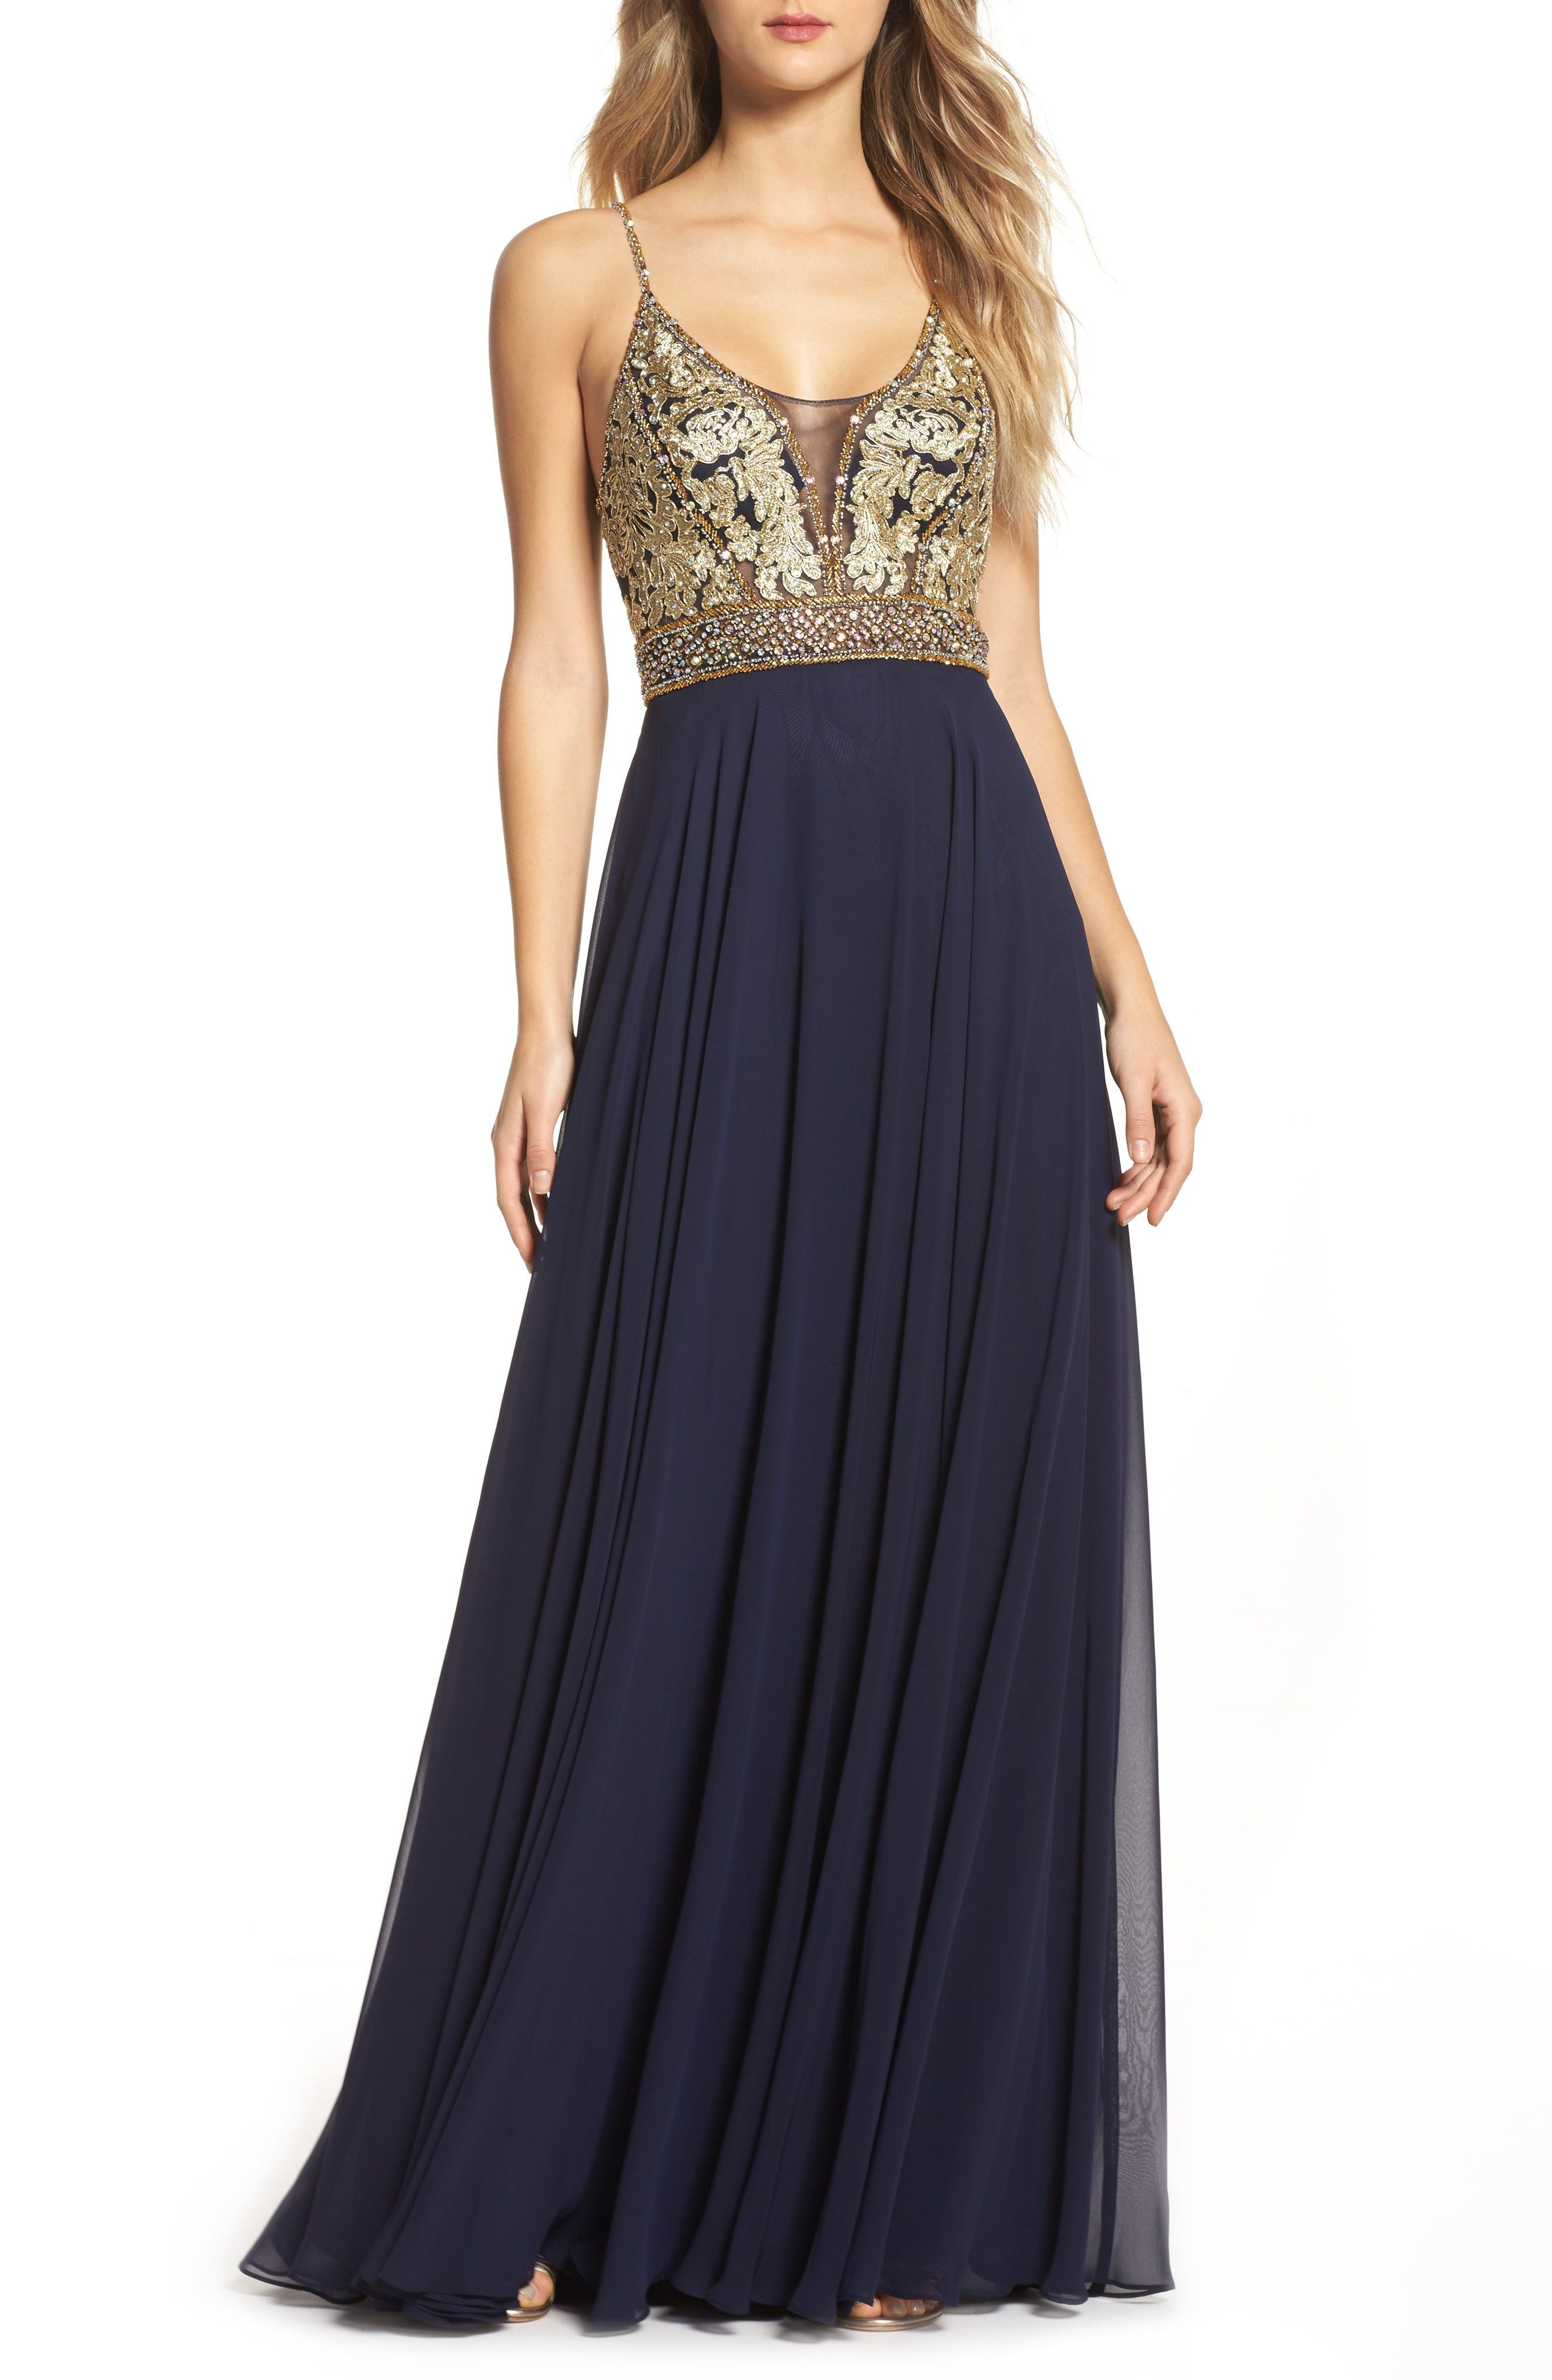 Navy Blue And Gold Formal Dress For Prom Ad Promdress Gala Gowns Formal Dresses For Women Gowns